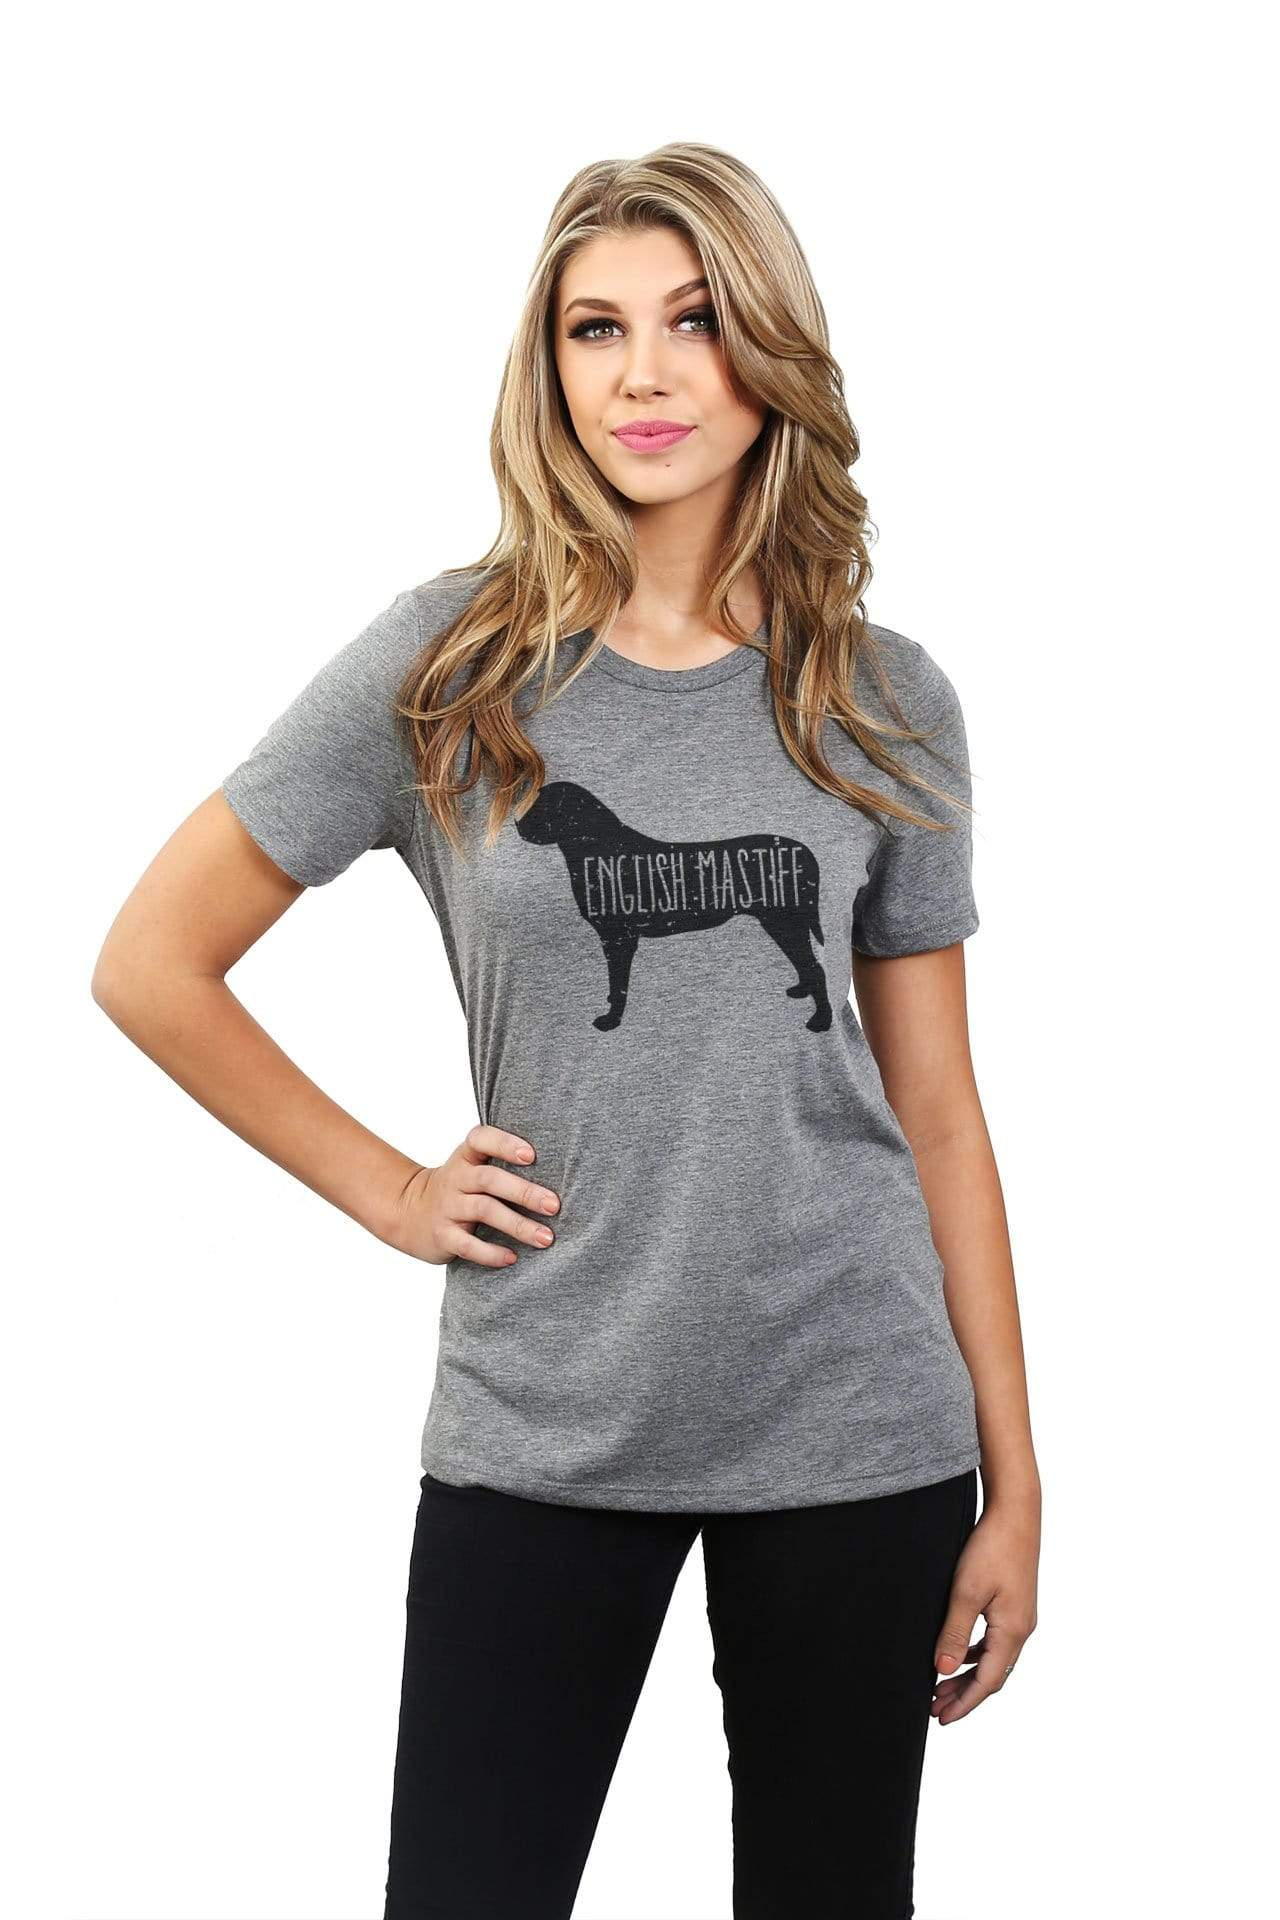 English Mastiff Silhouette - Thread Tank | Stories You Can Wear | T-Shirts, Tank Tops and Sweatshirts